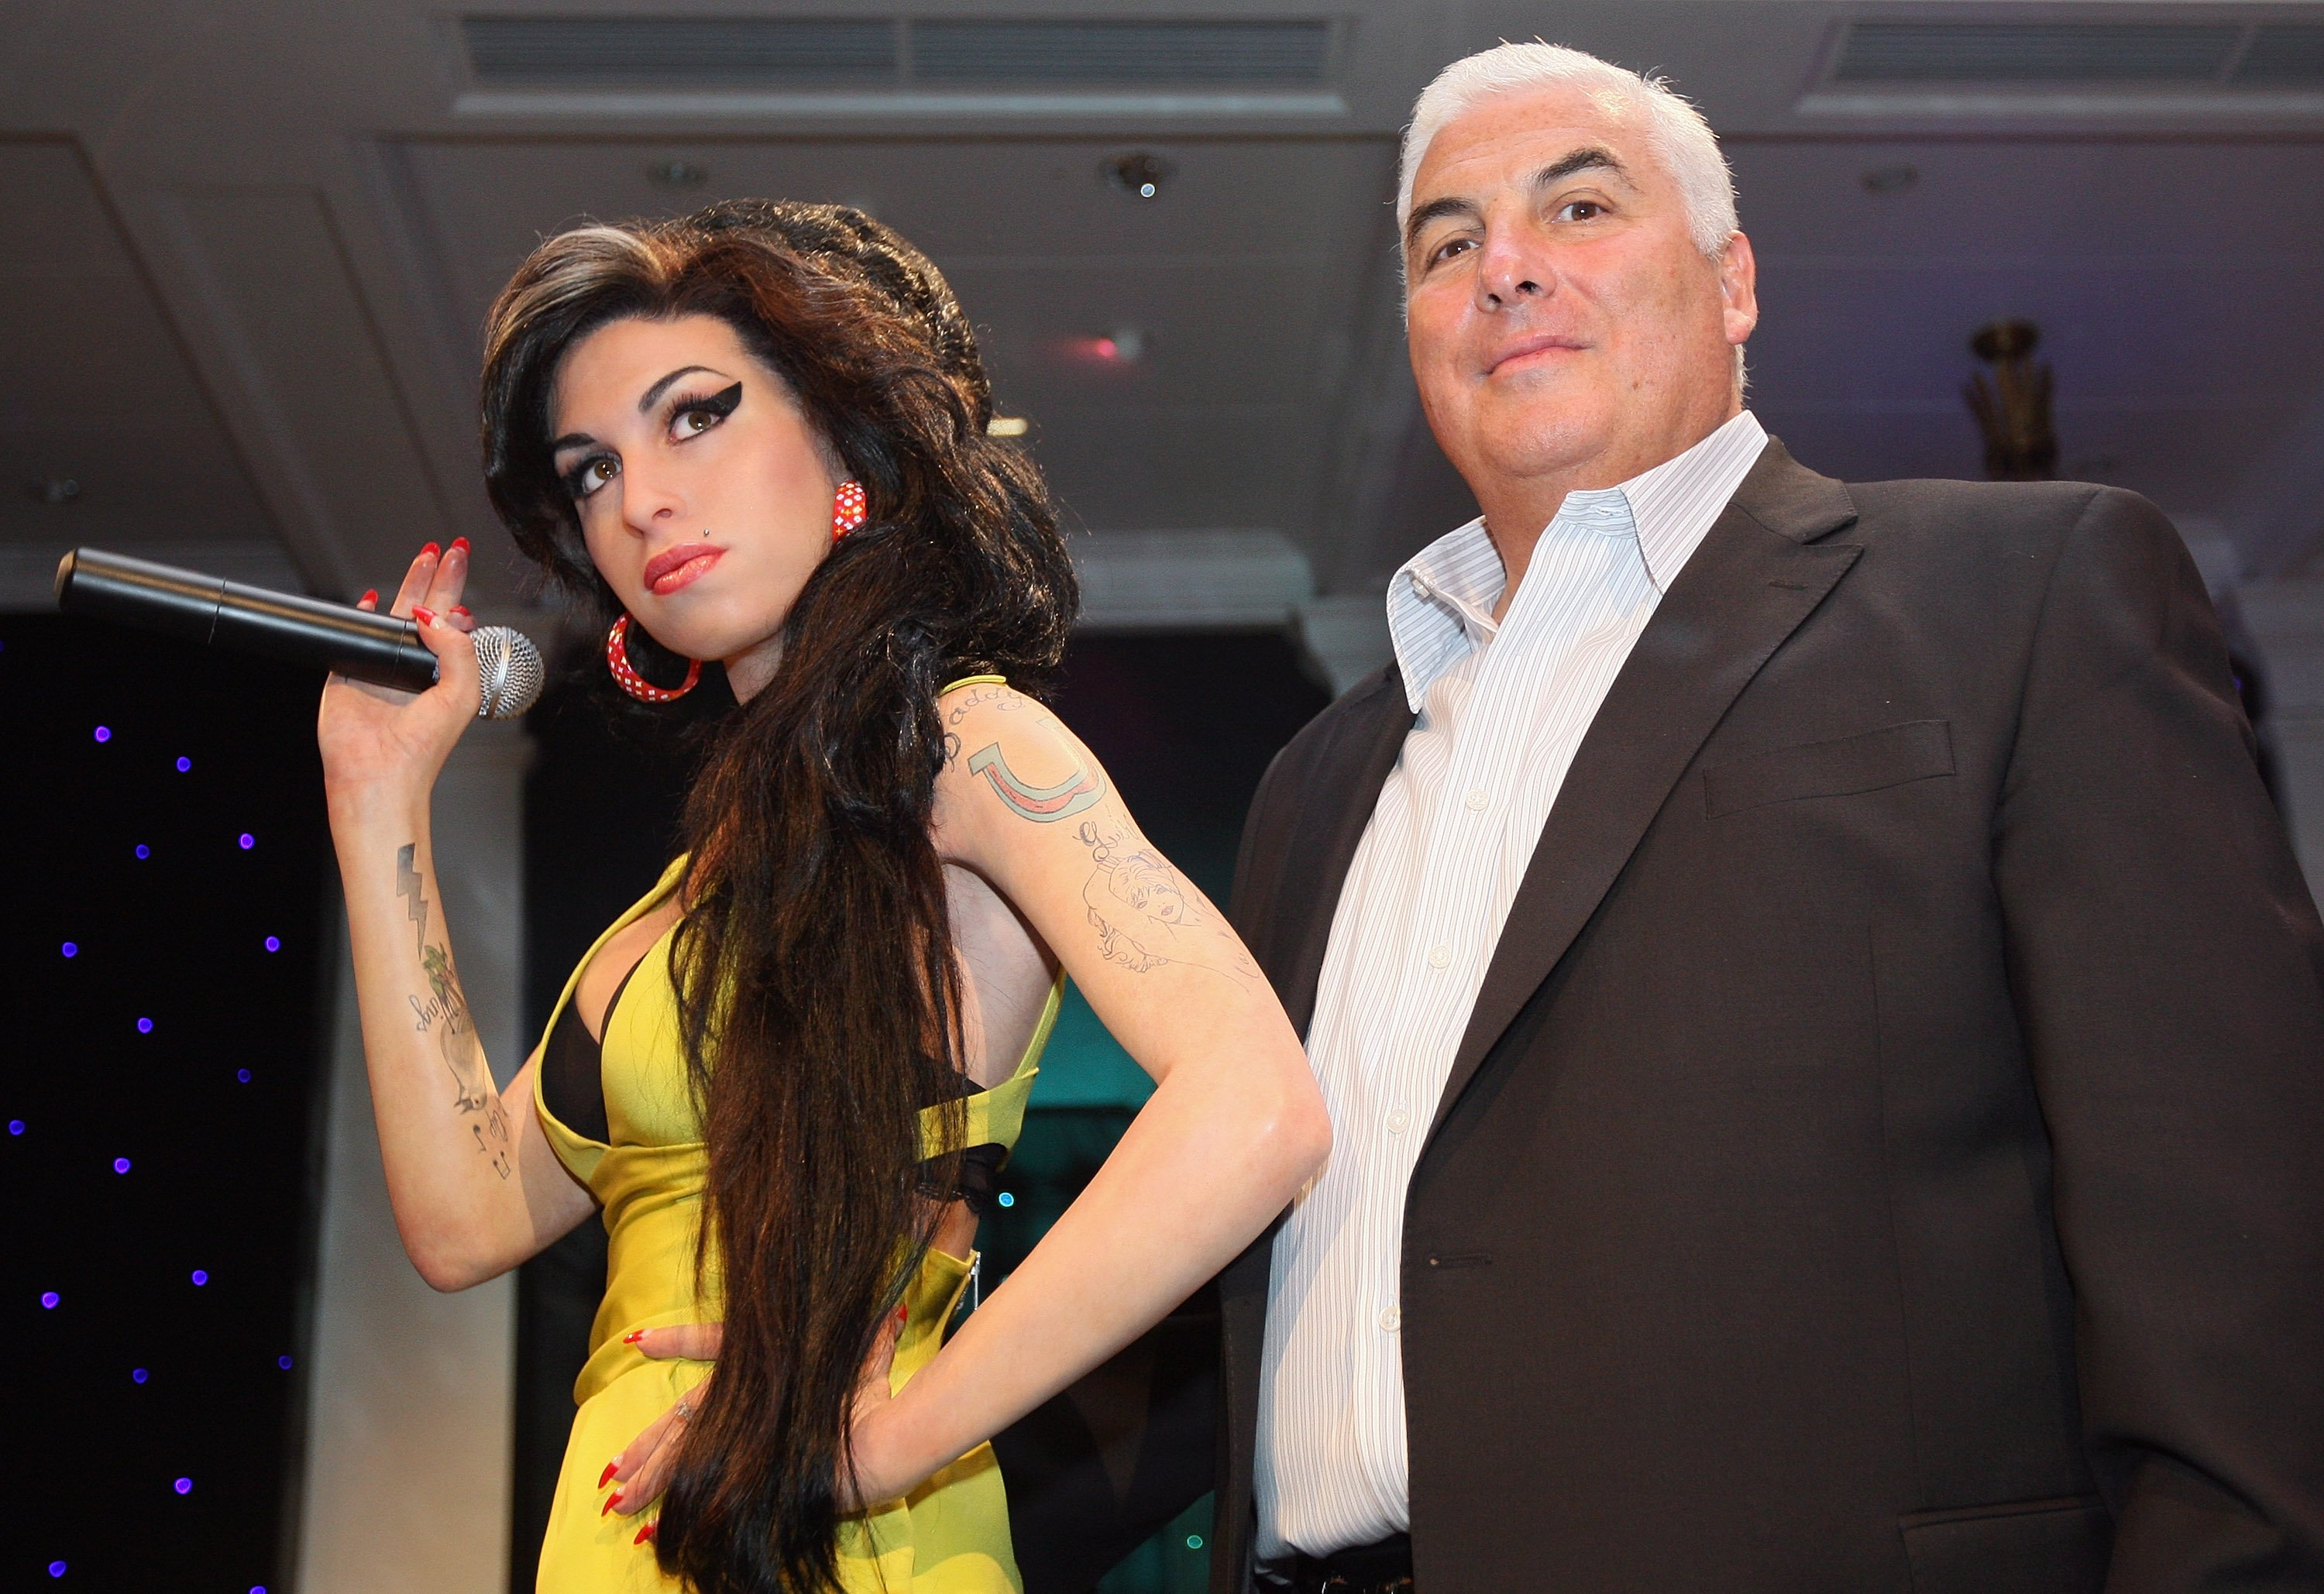 Amy Winehouse's father Mitch Winehouse unveil a waxwork figure of Grammy Award winning singer Amy Winehouse at Madame Tussauds on July 23, 2008 in London, England | Source: Getty Images